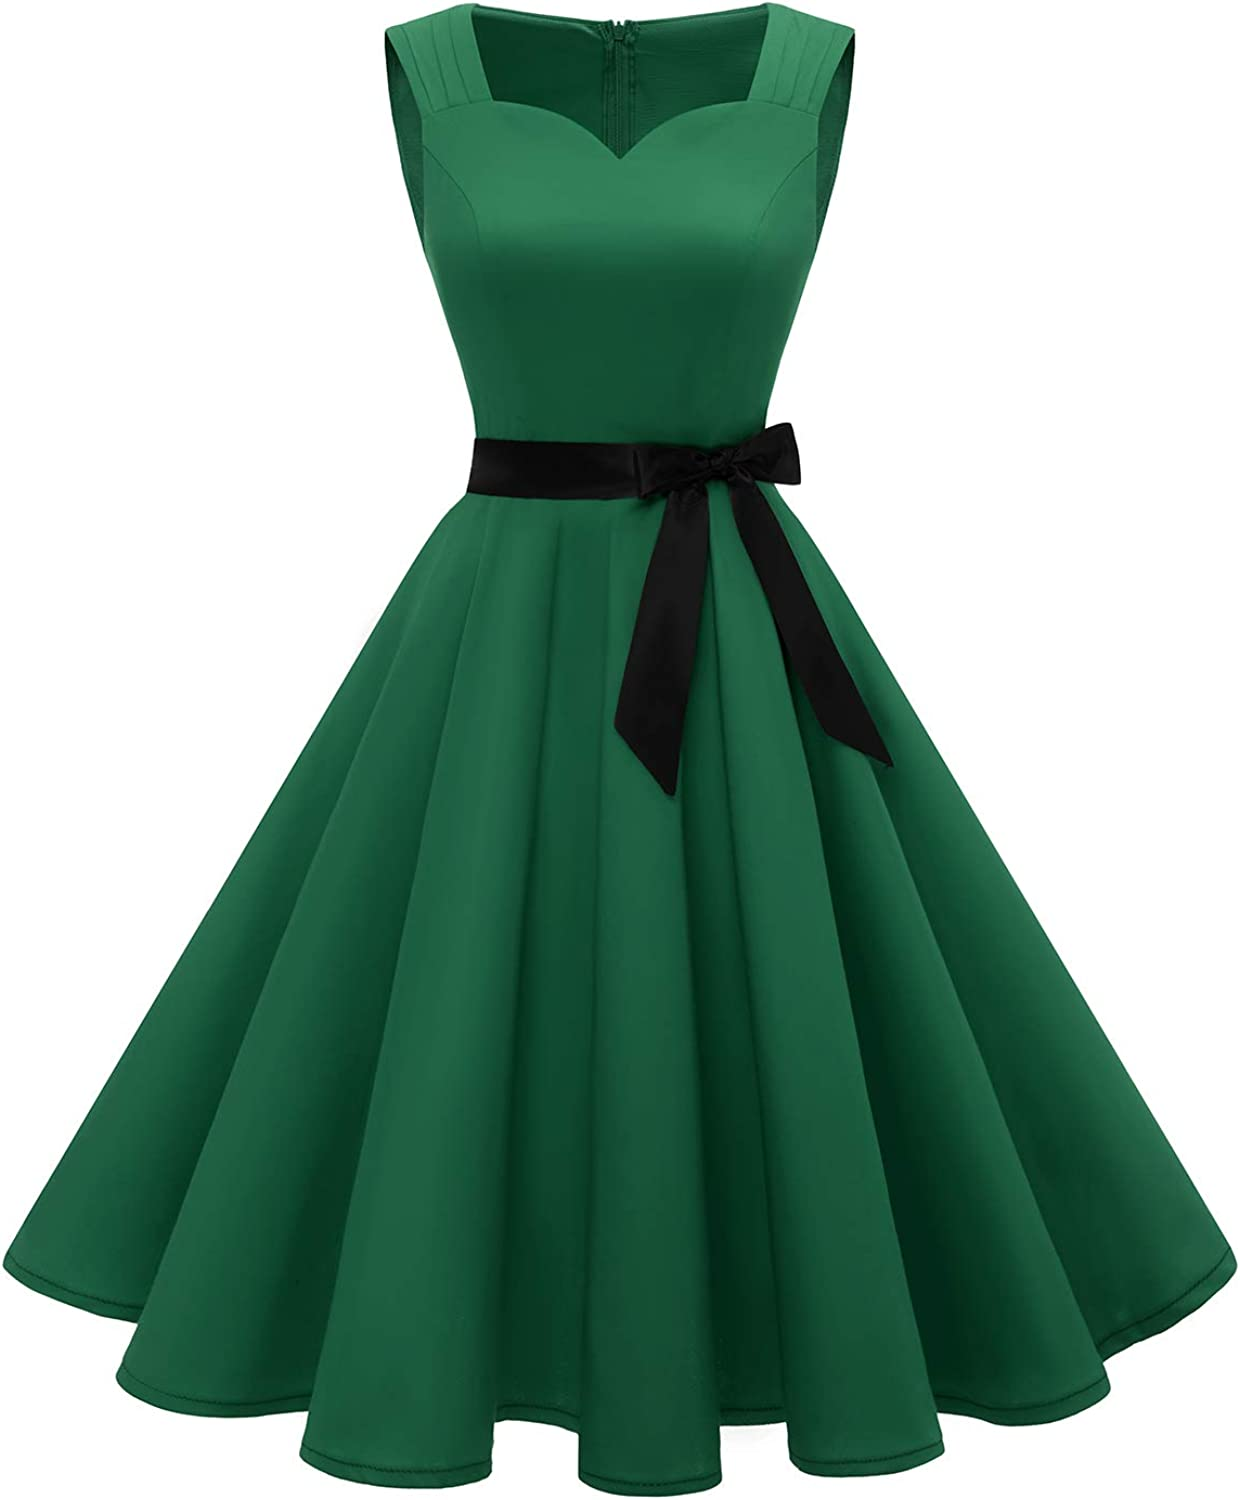 Gardenwed 1950s Retro Vintage Tea Dress with Belt Swing Sleeveless Knee-Length for Women Cocktail Rockabilly Party